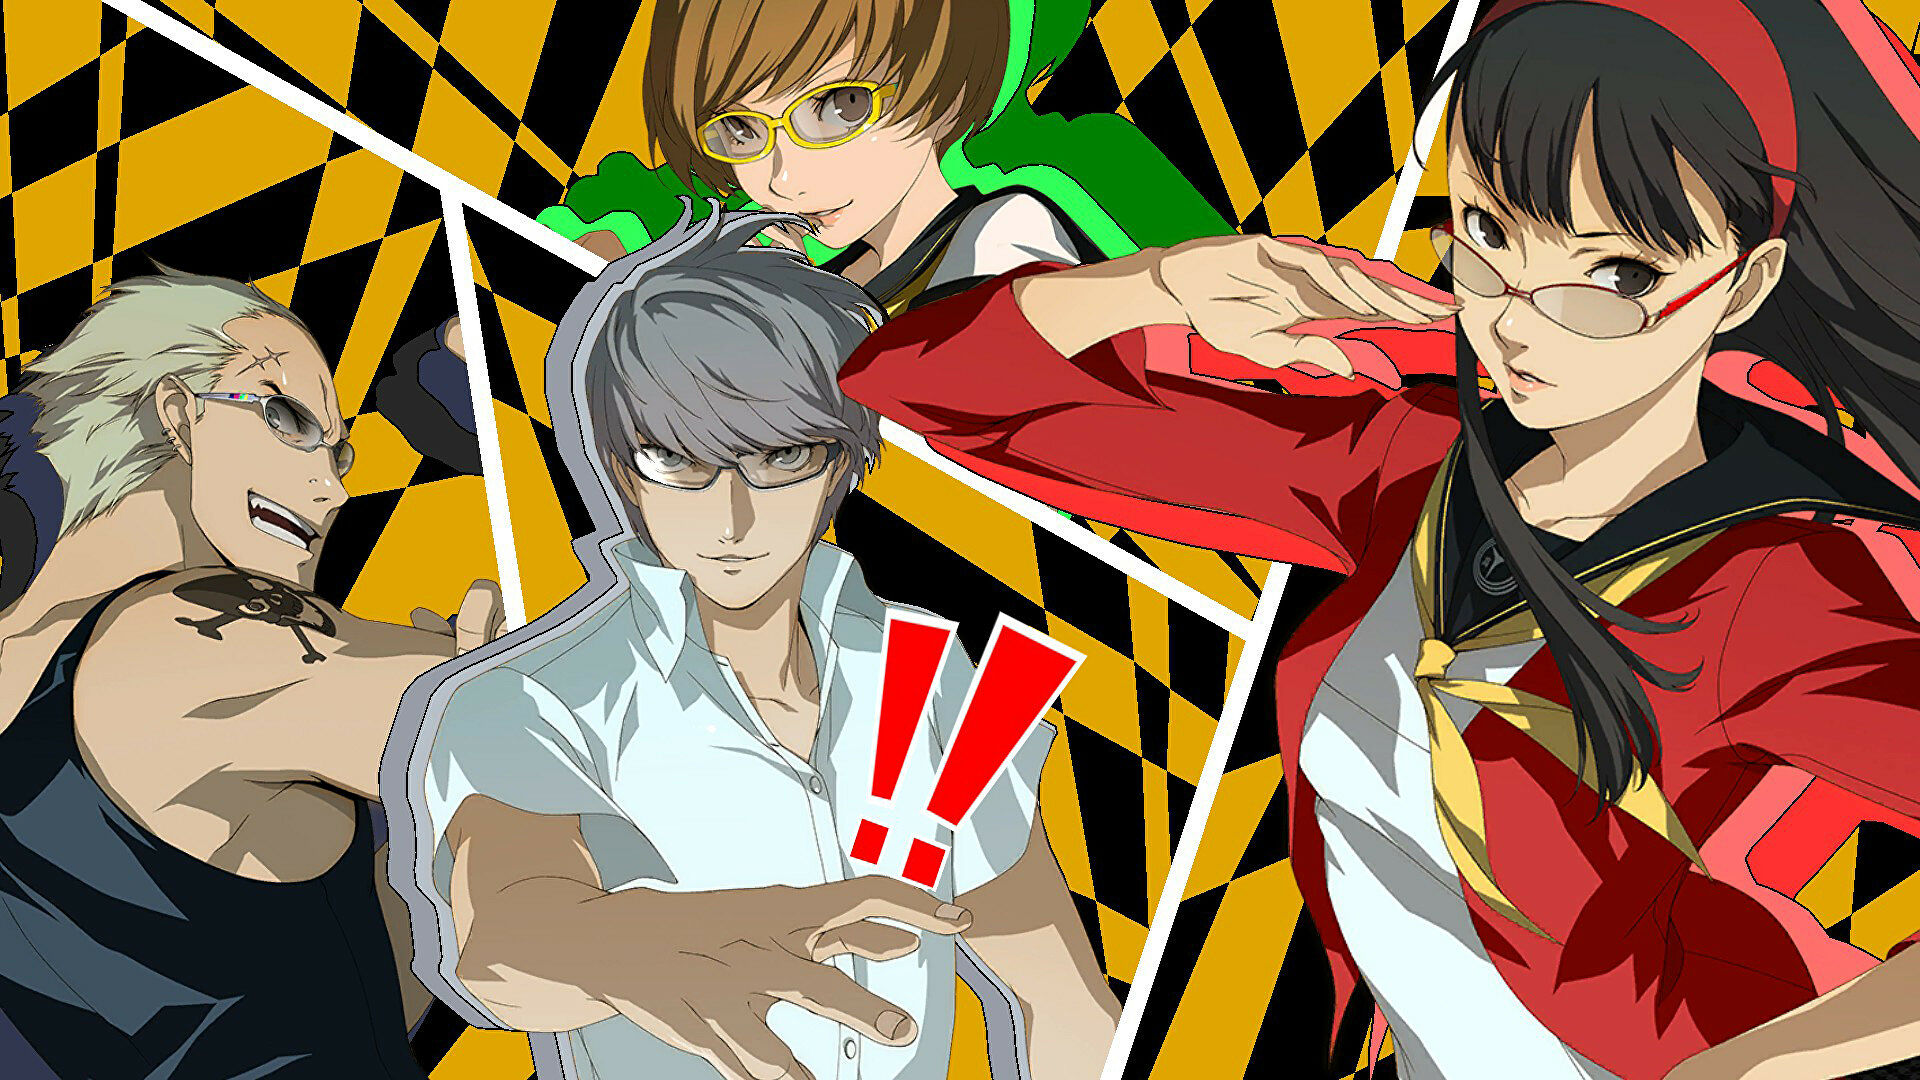 Persona 4 Golden has sold over a million copies on PC